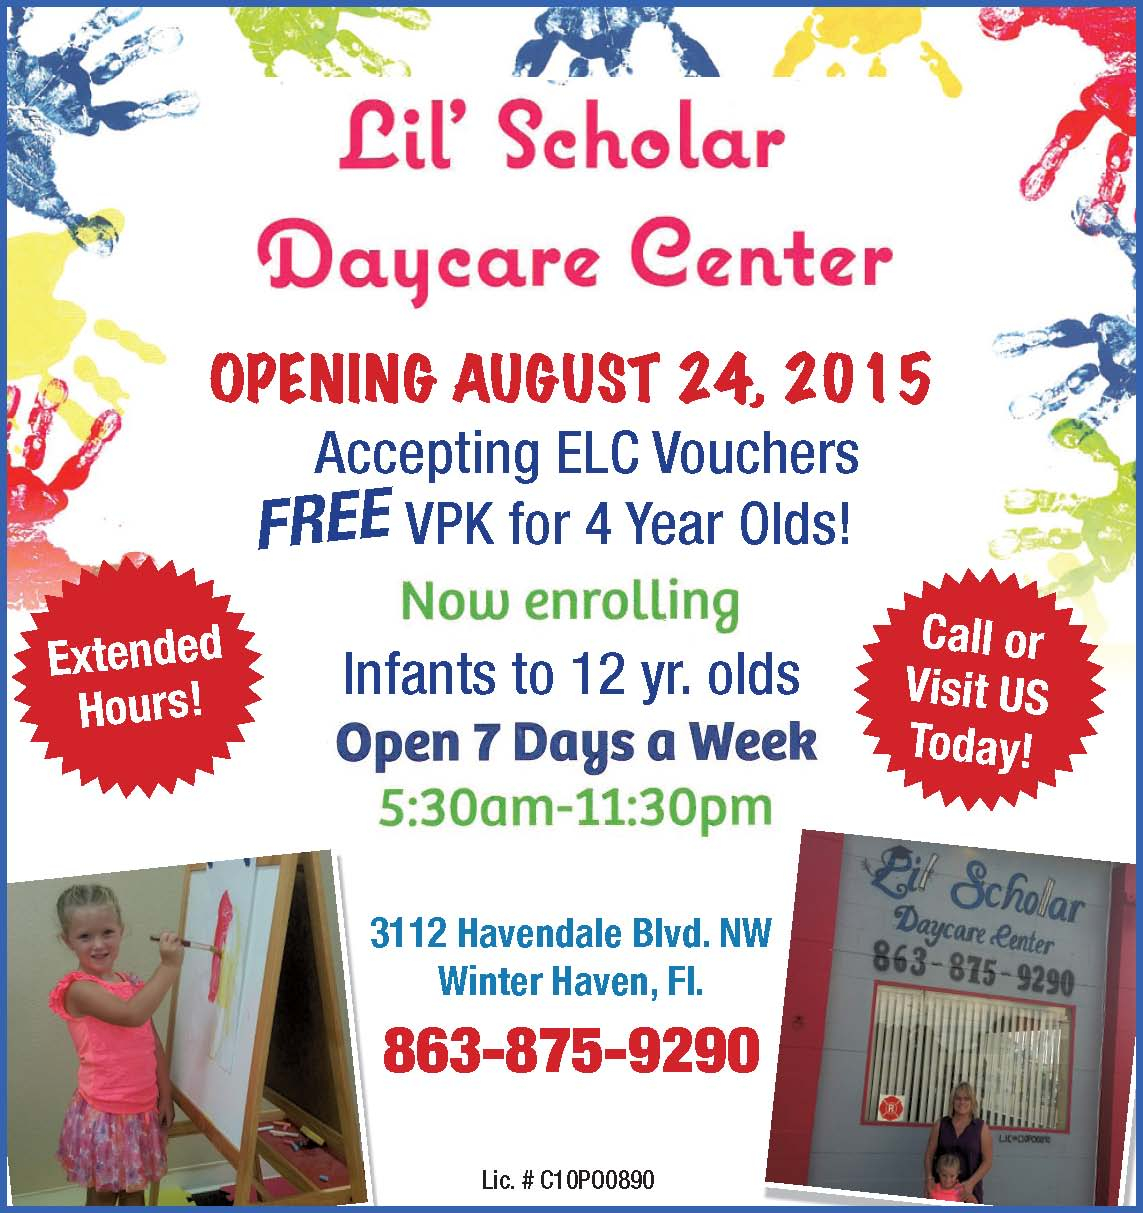 Lil Scholar Daycare Center Winter Haven FL Child Care Facility